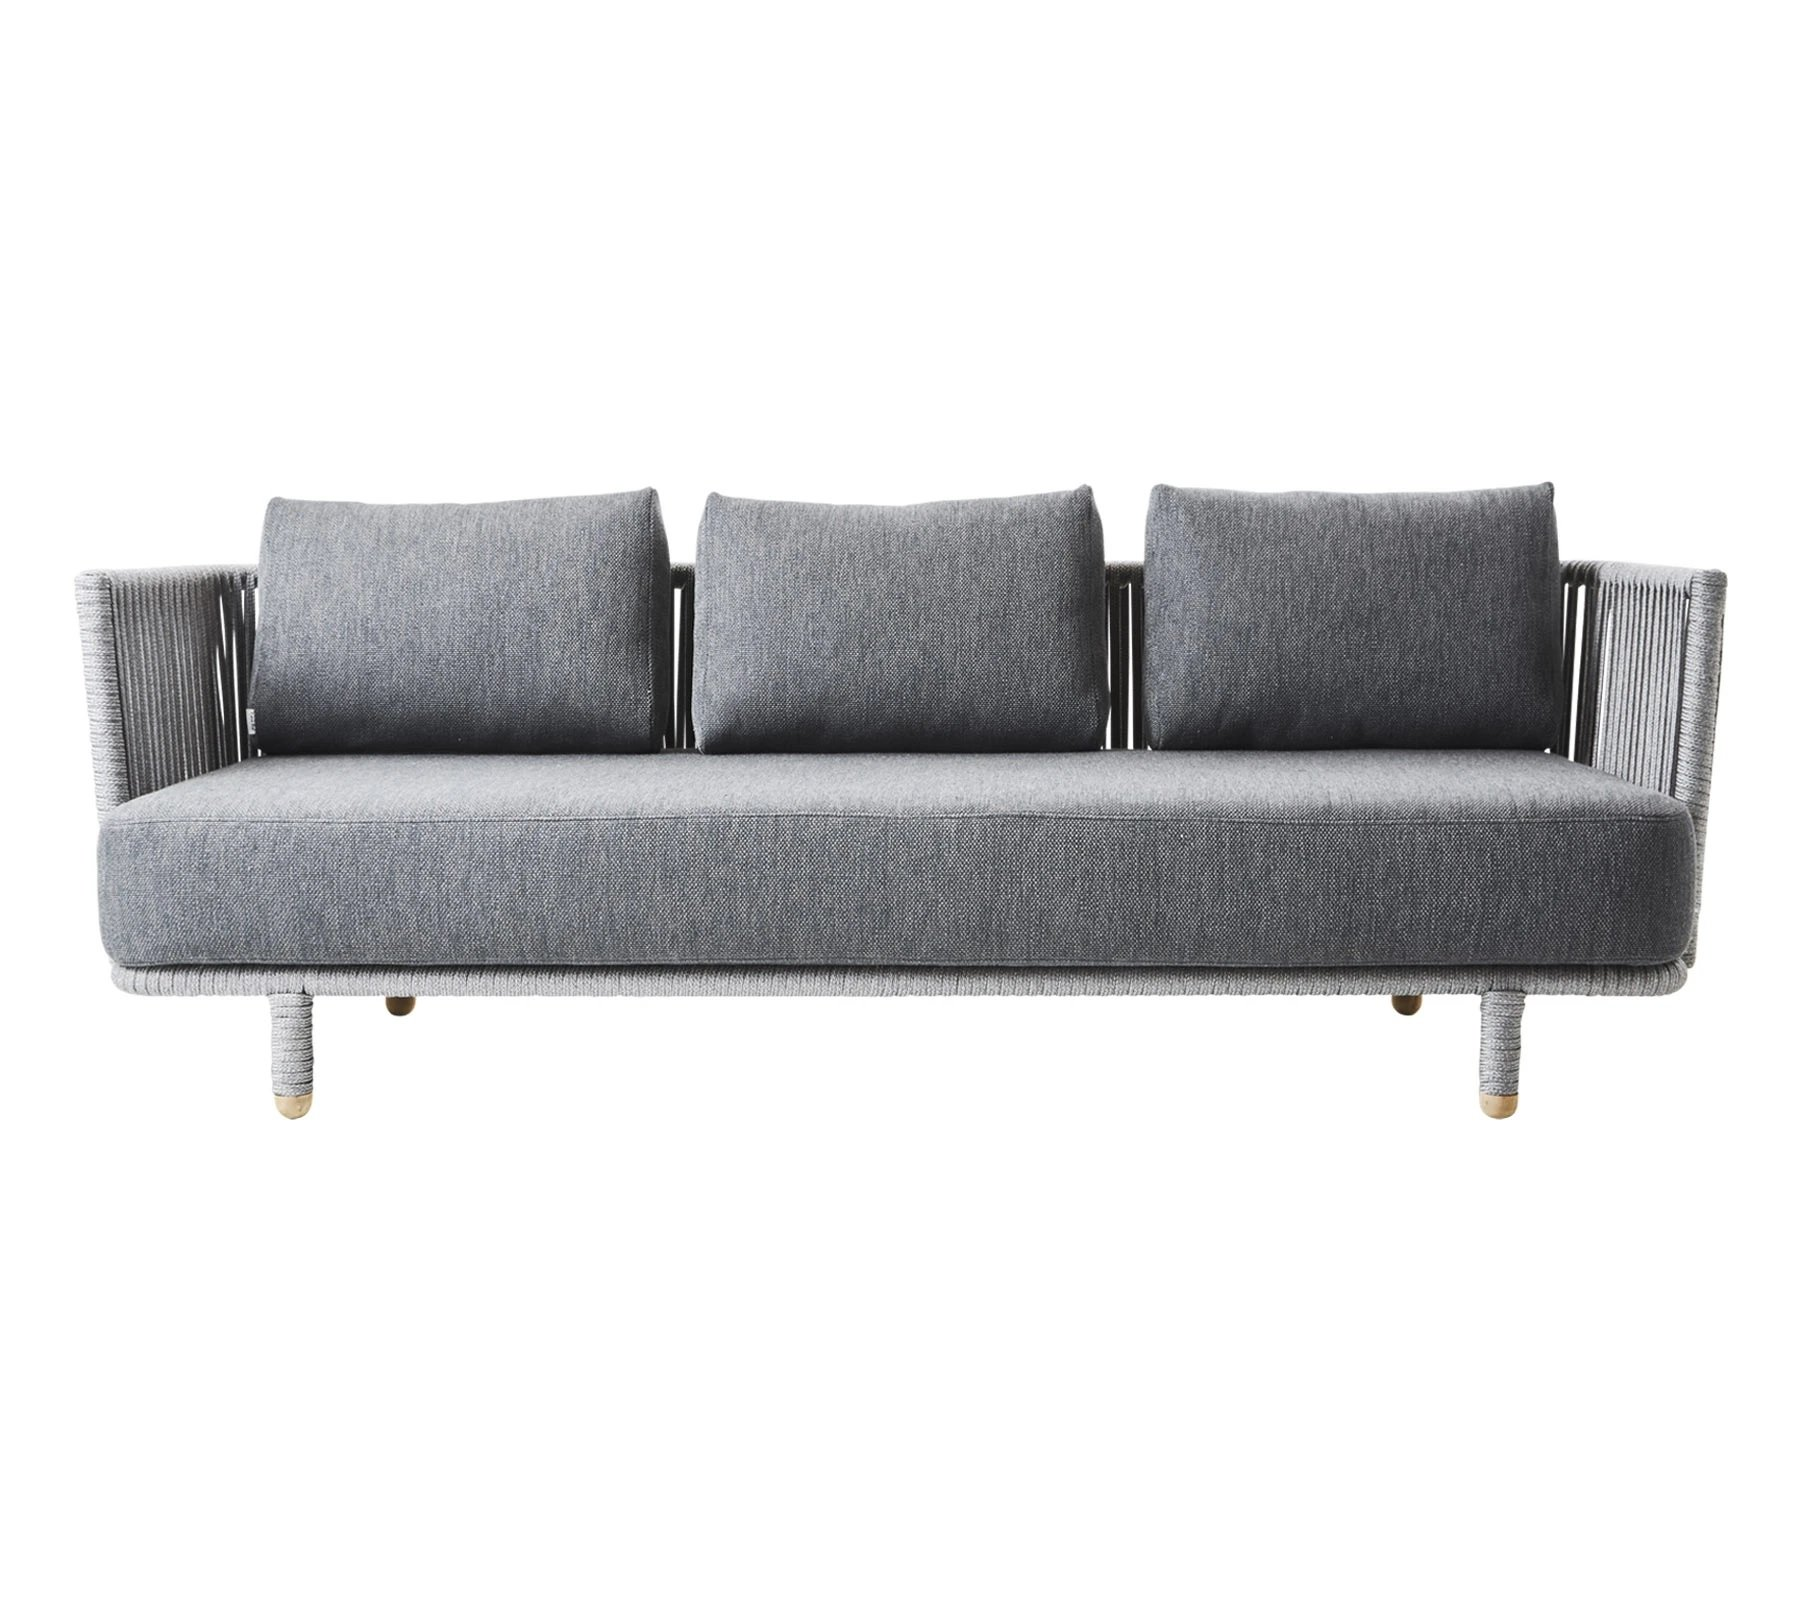 Moments 3-Seater Outdoor Sofa  from Cane-line